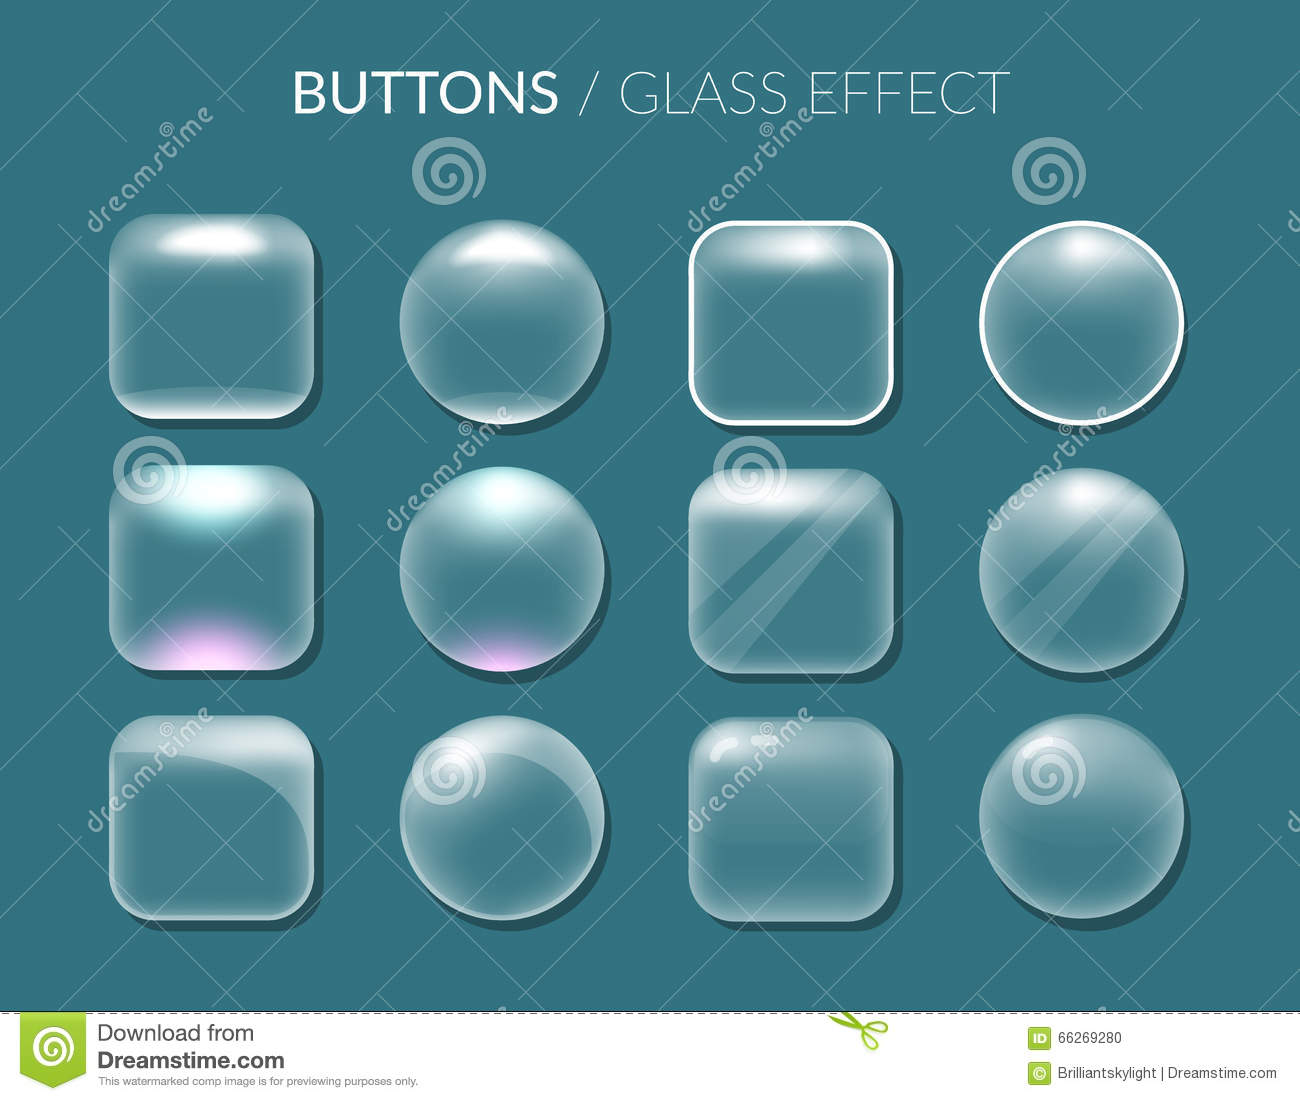 Buttons. Glass Effect. Stock Vector - Image: 66269280